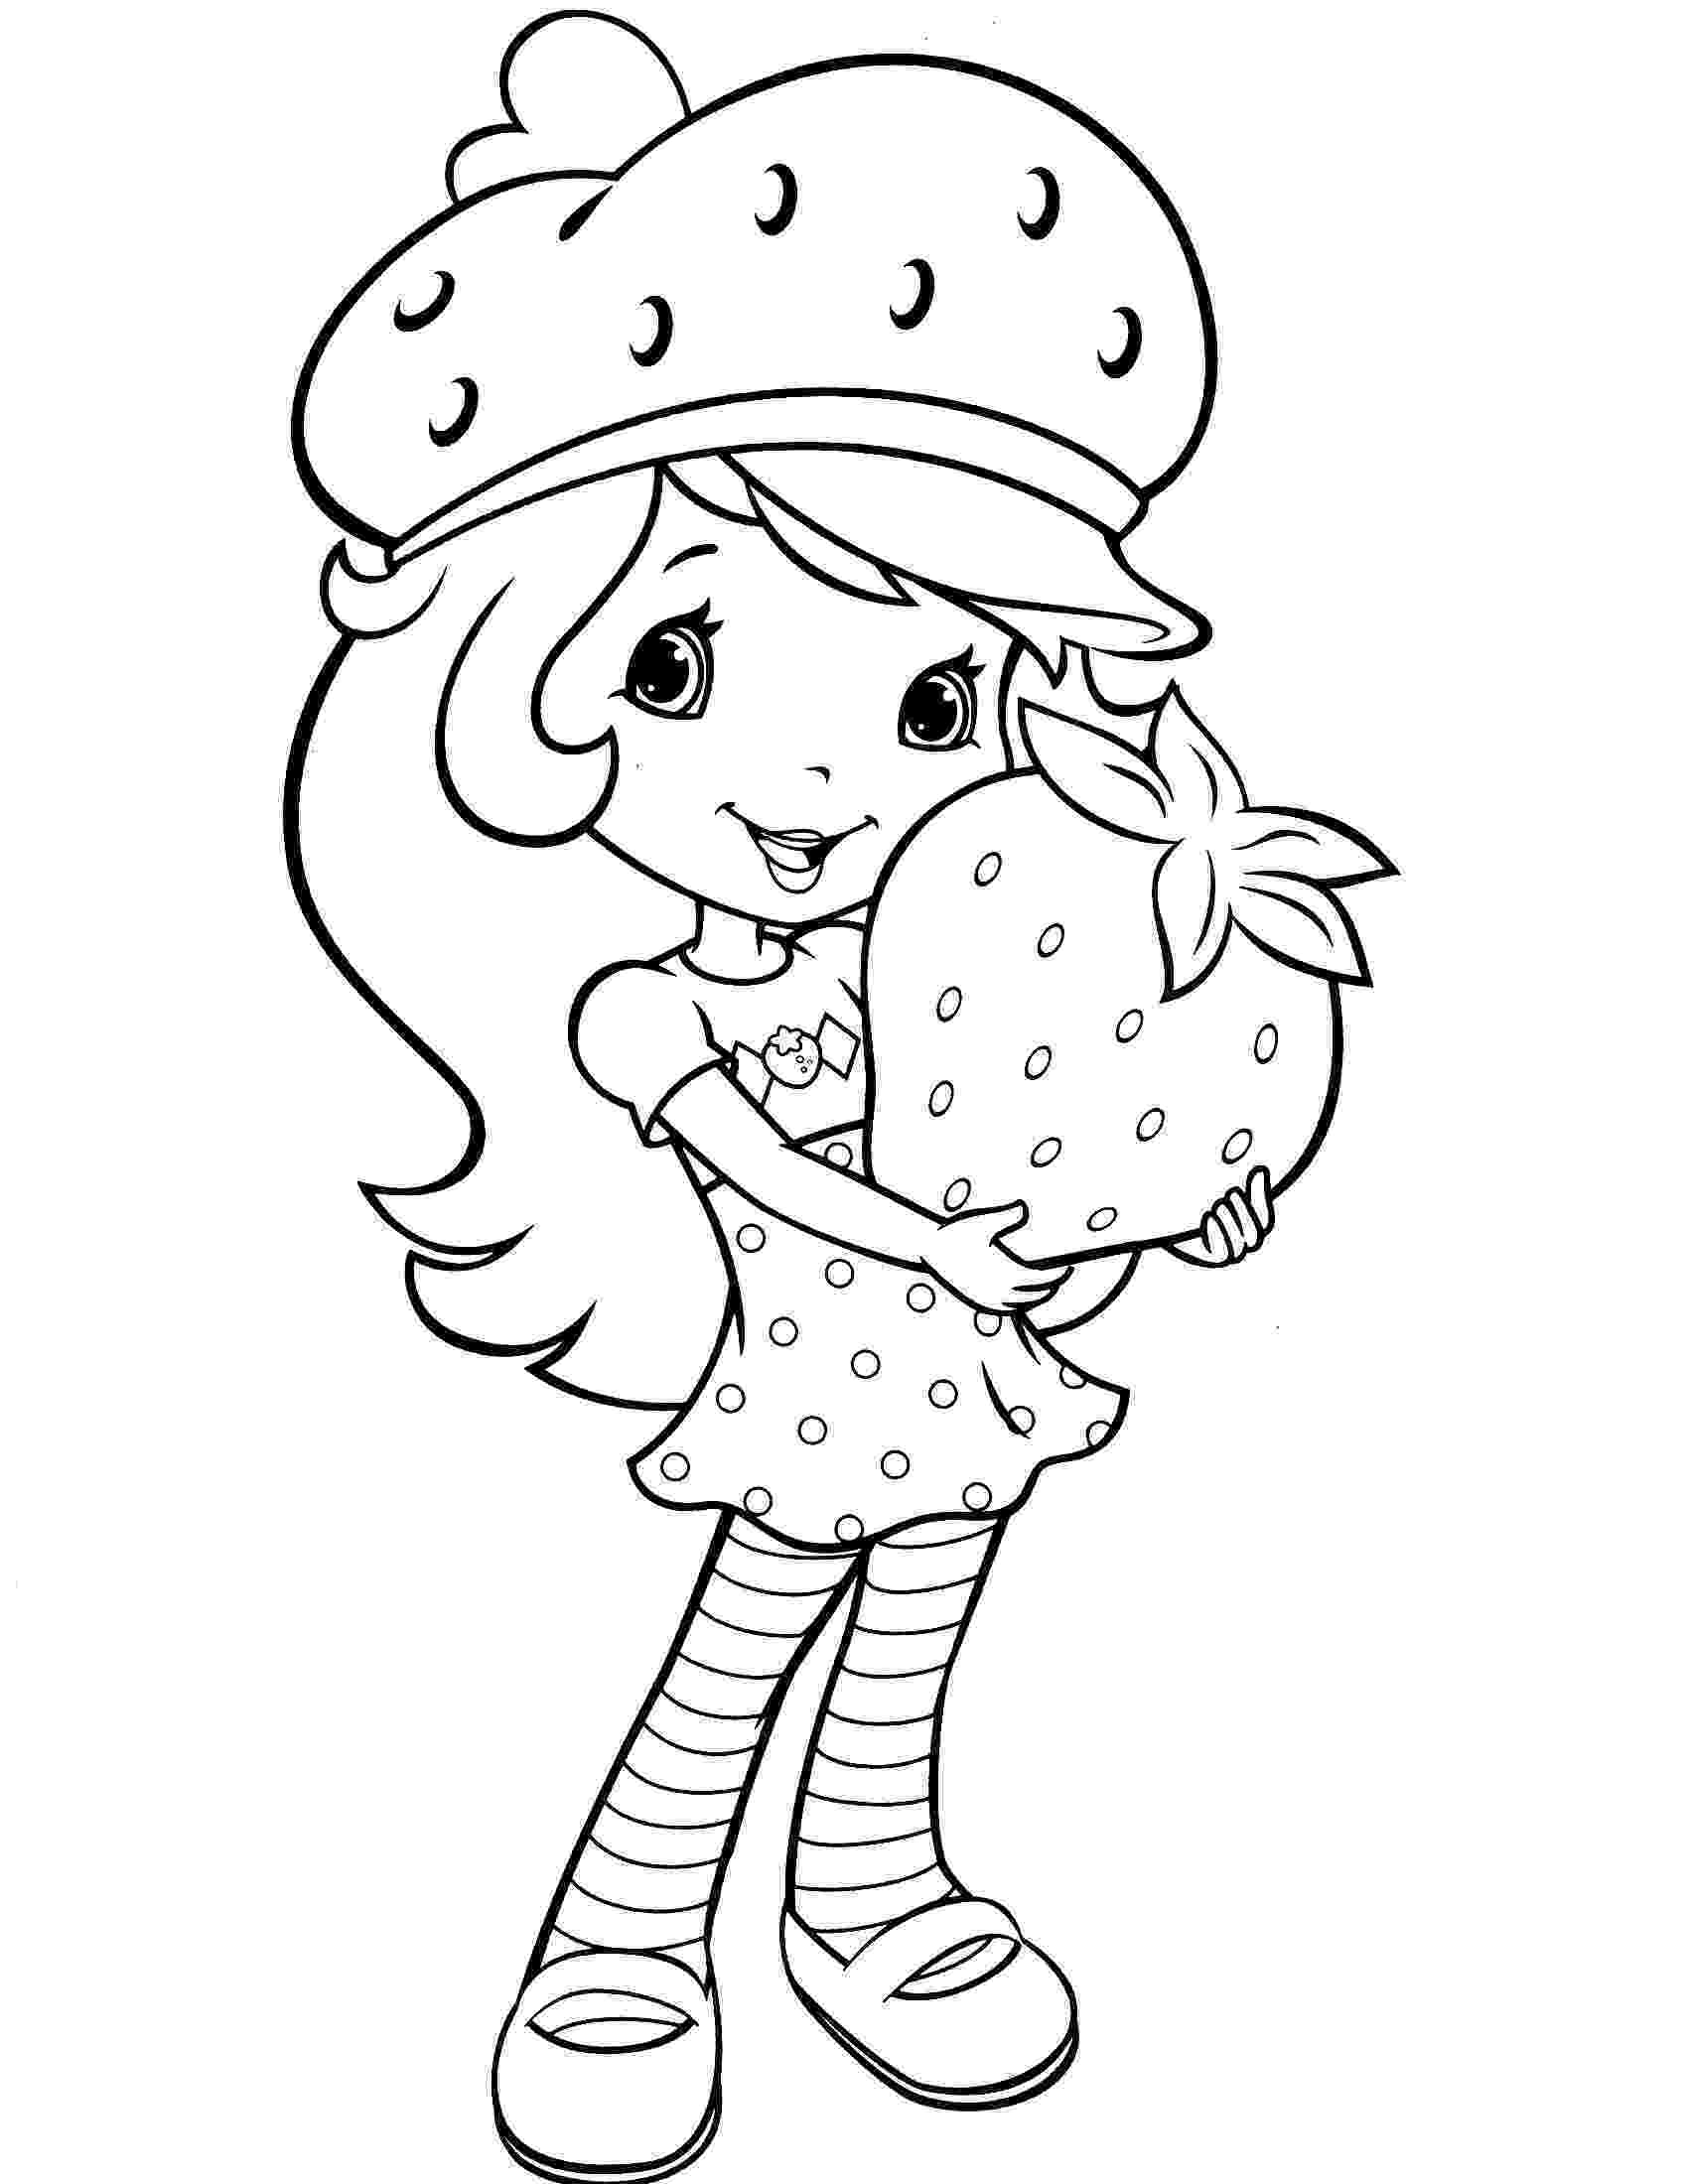 colouring picture of strawberry strawberry cartoon smiling coloring page wecoloringpagecom colouring picture strawberry of